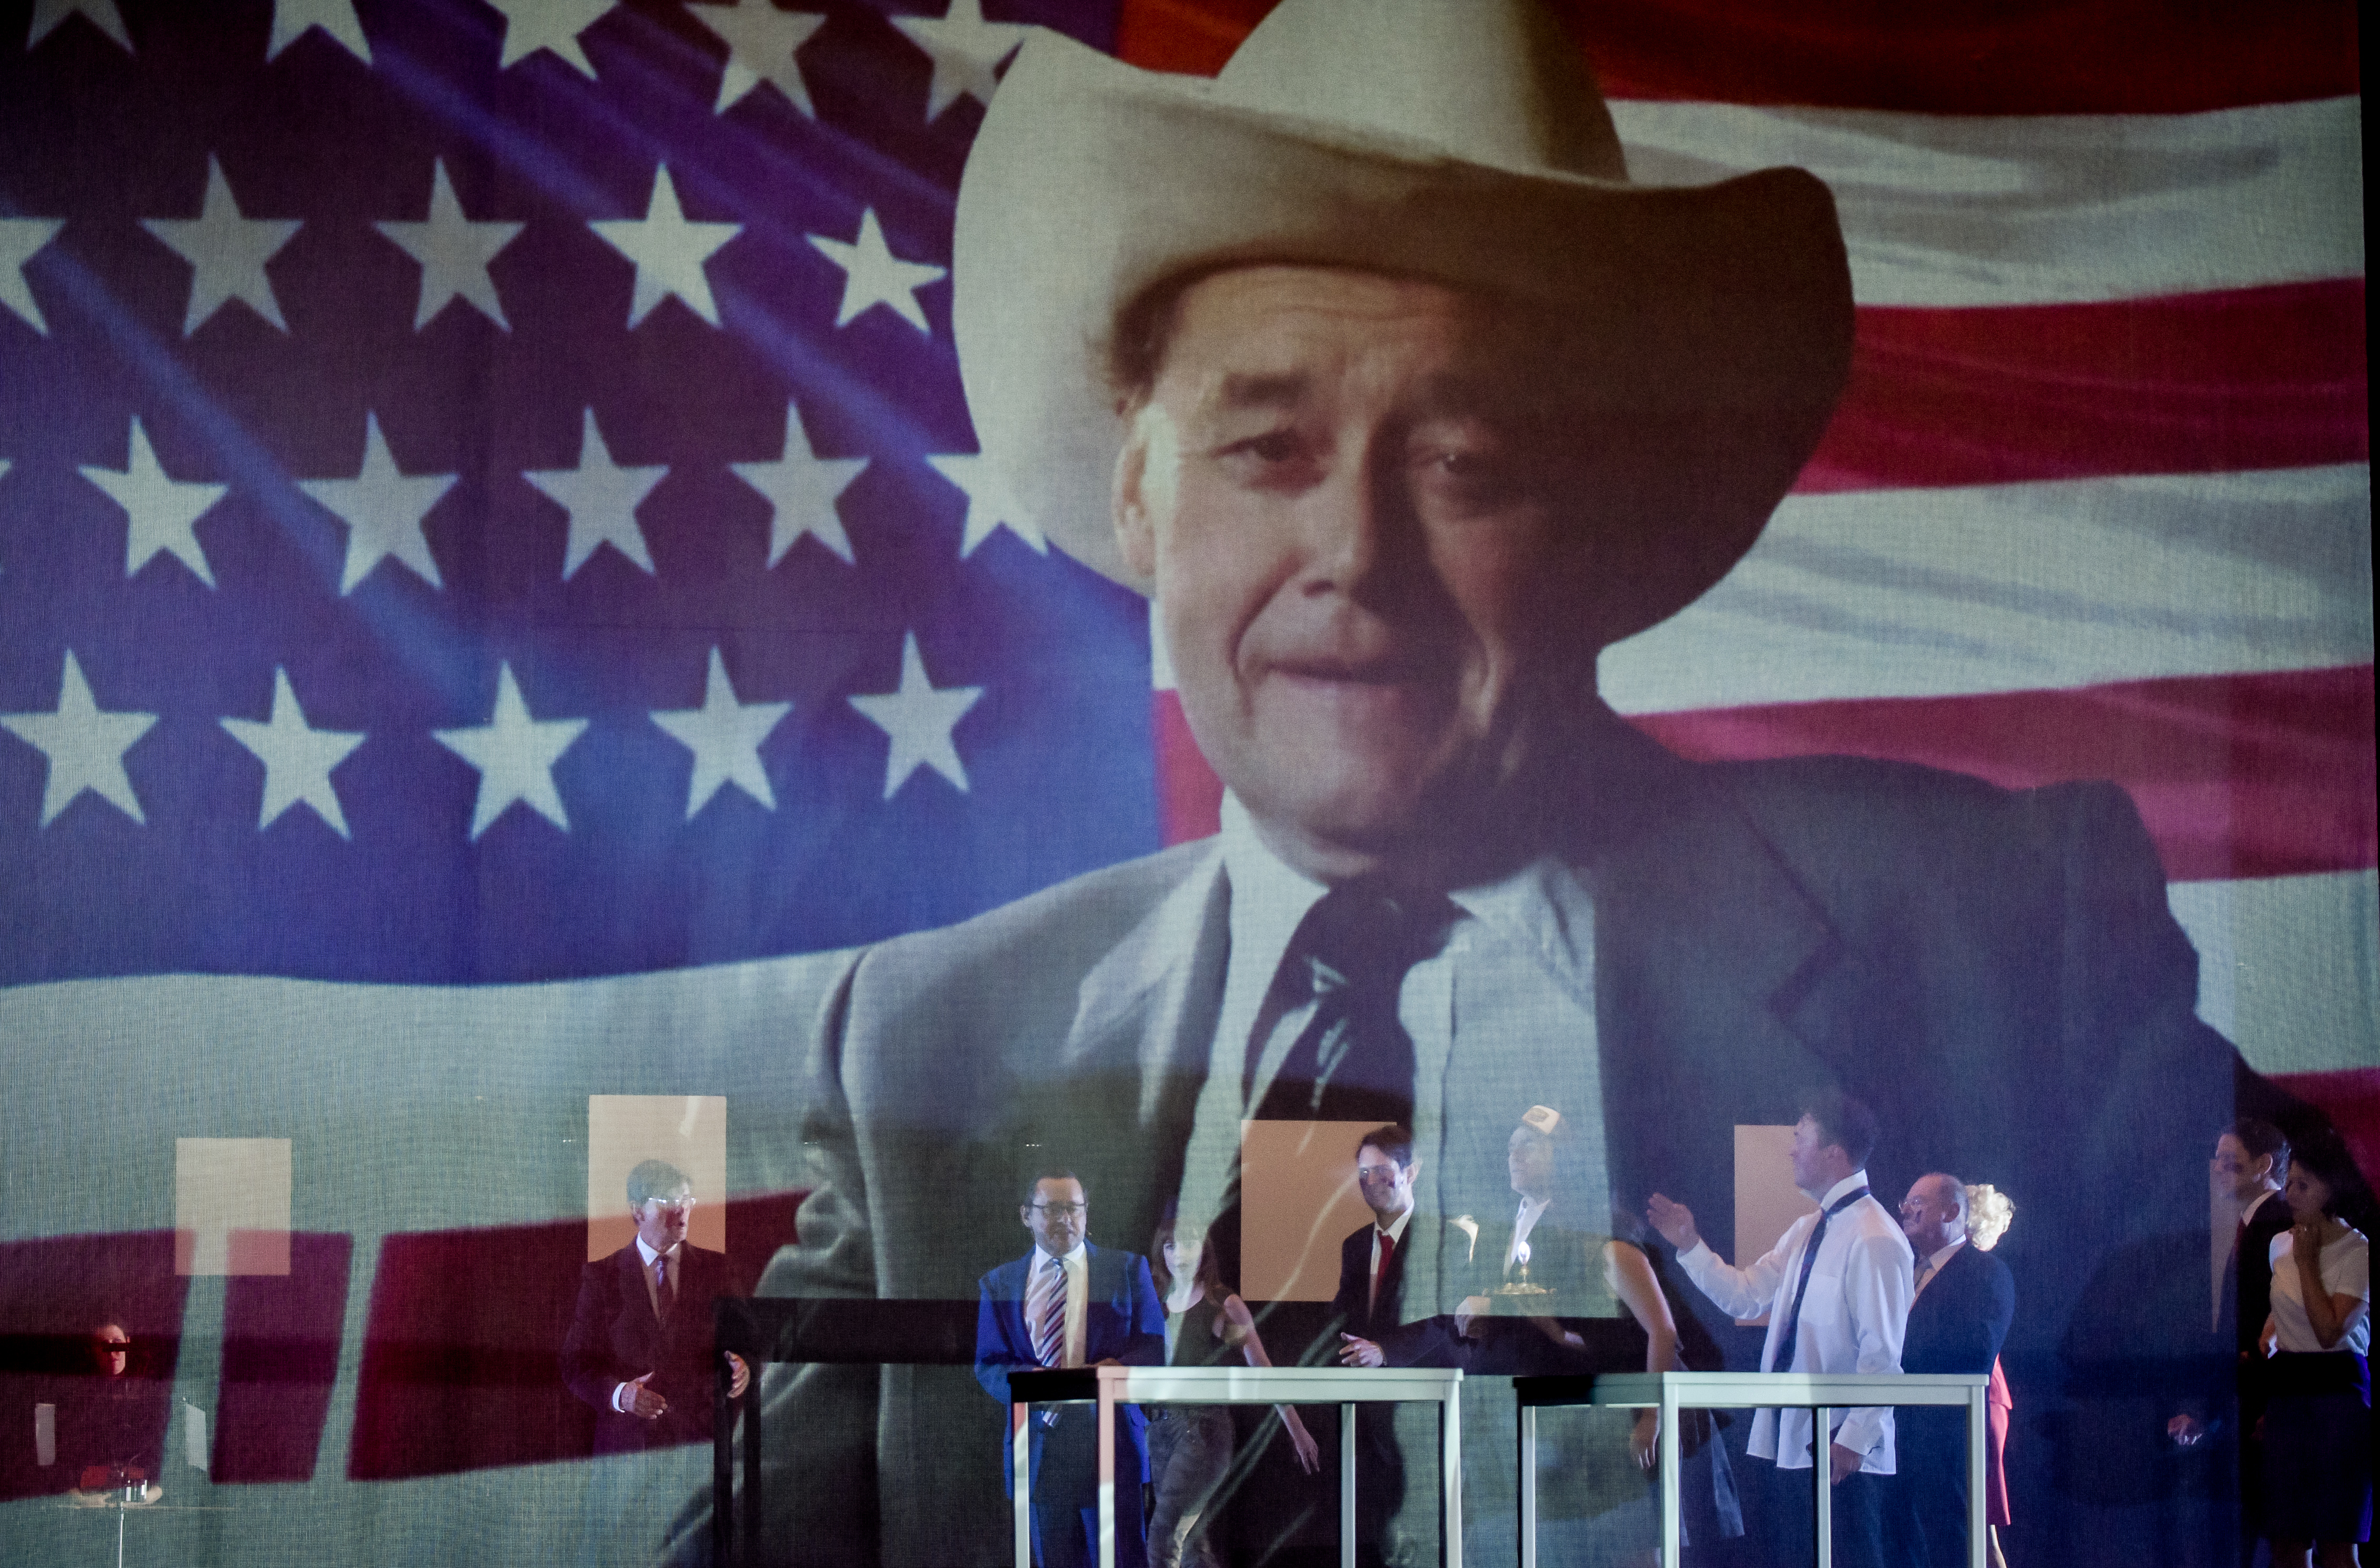 """In a scene from """"Reich des Todes"""", actor Wolfgang Pregler can be seen in a projection, wearing a cowboy hat in front of a US-flag."""